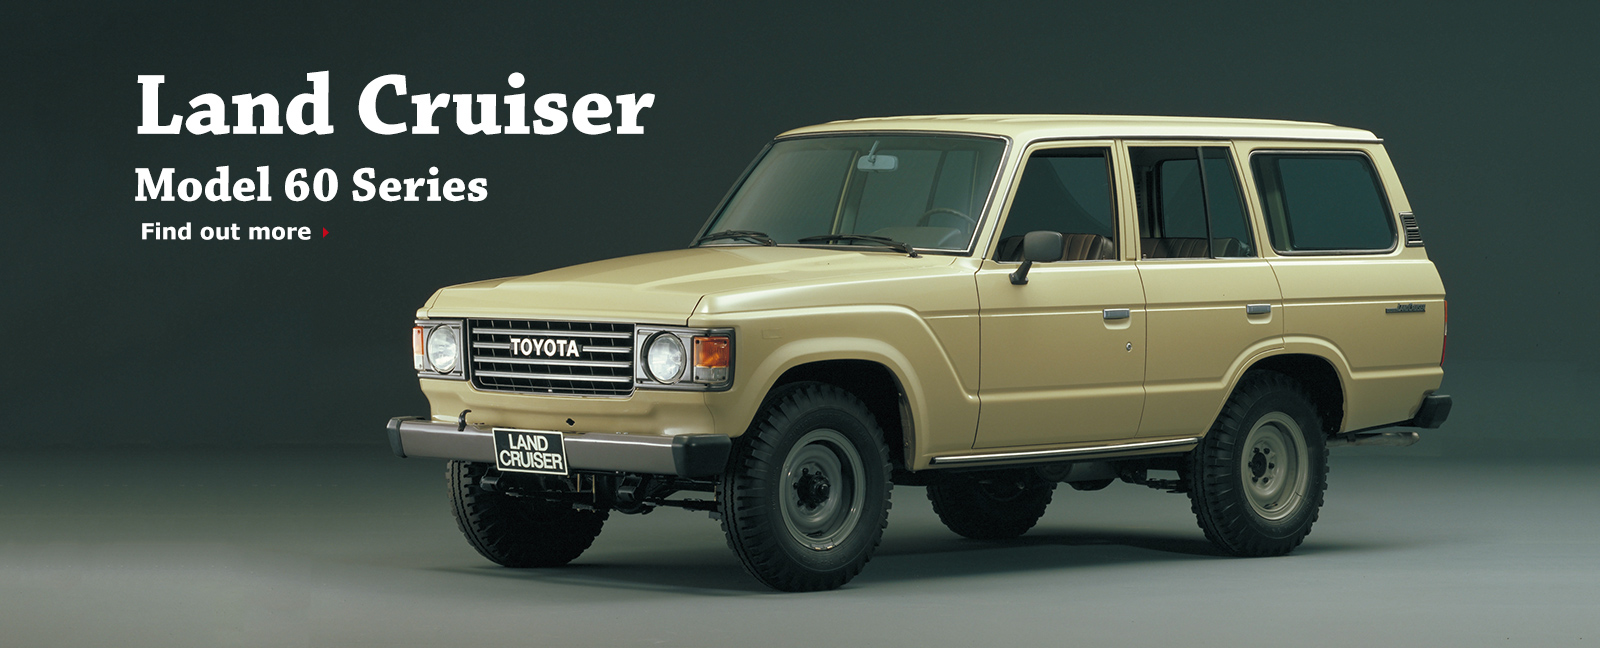 Land Cruiser Model 60 Series Find Out More